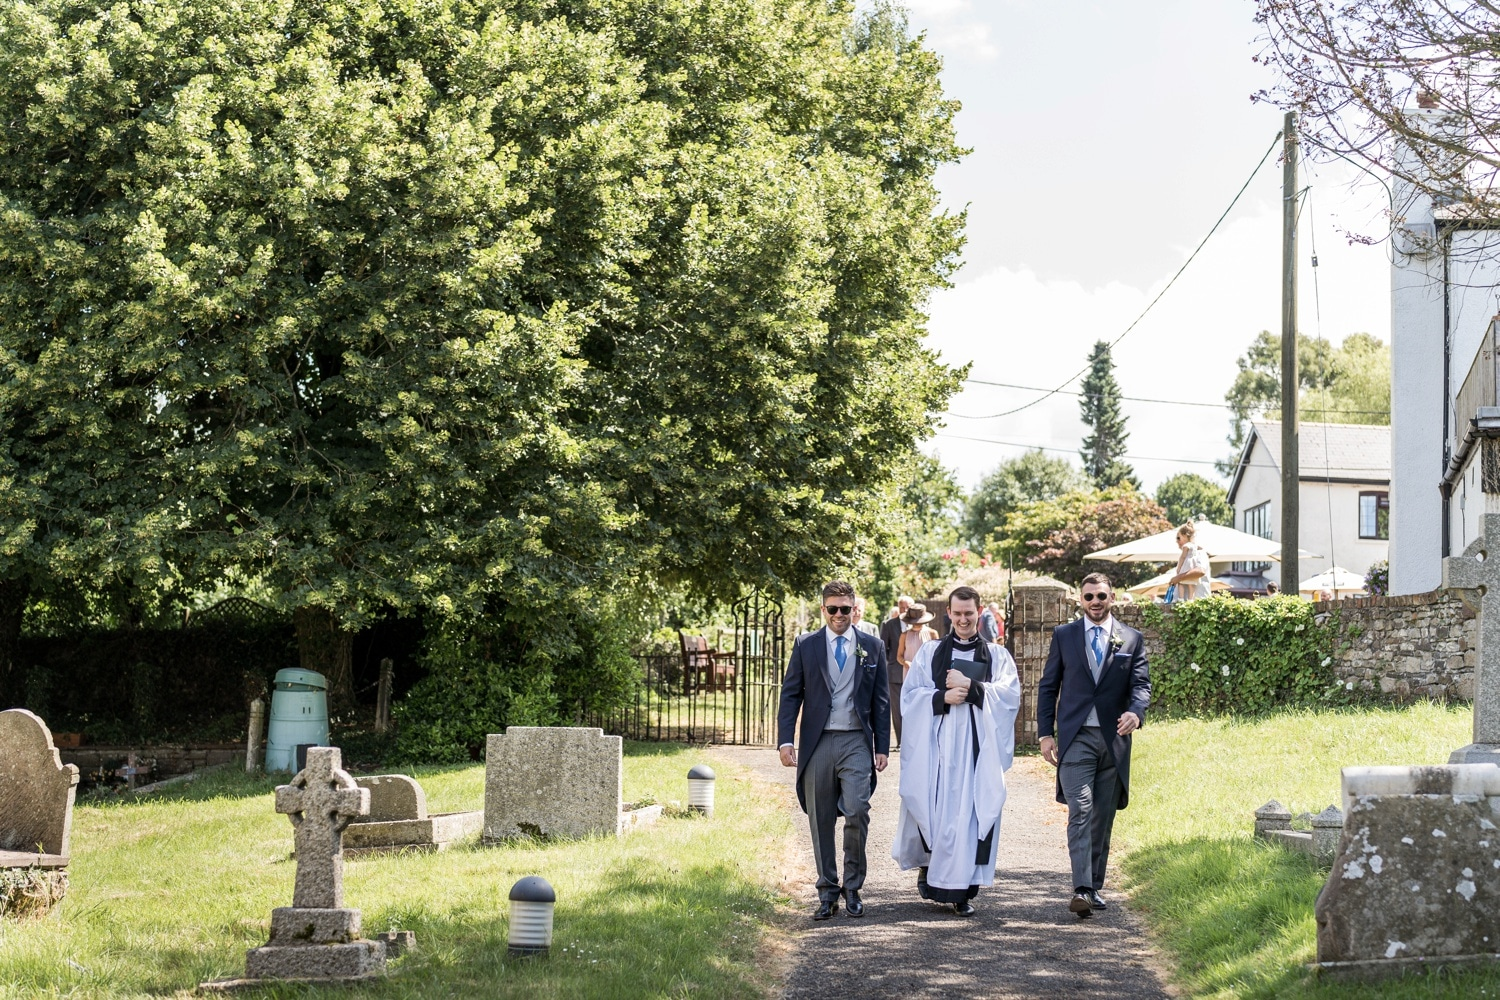 Groom with best man and vicar walks to church for wedding